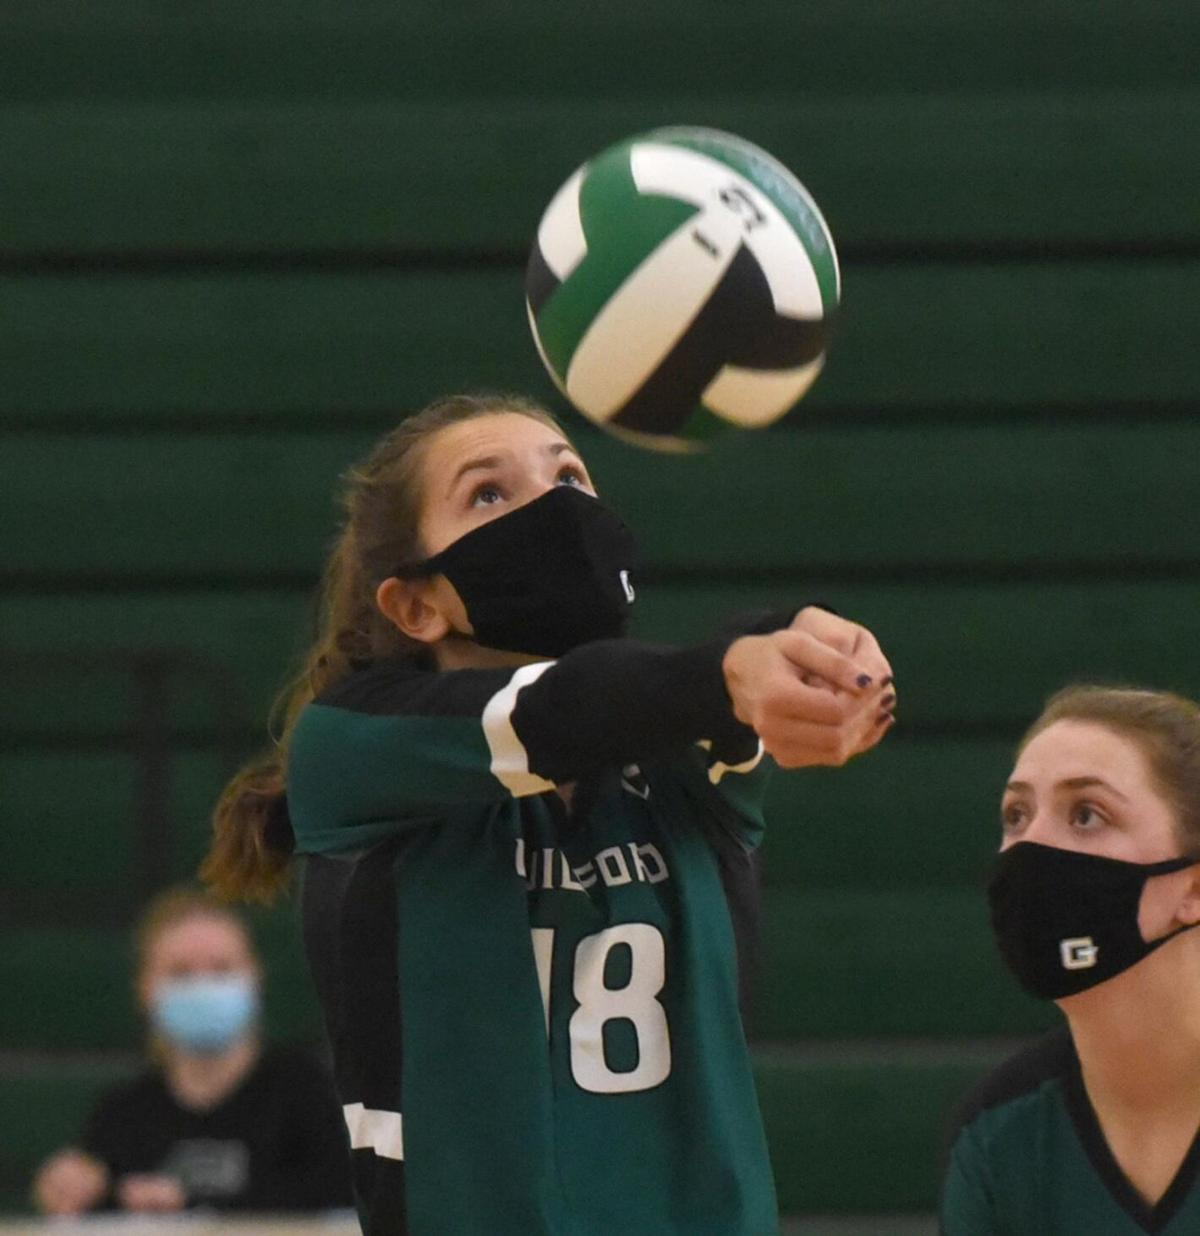 Guilford sweeps its way to SCC Div. C volleyball championship